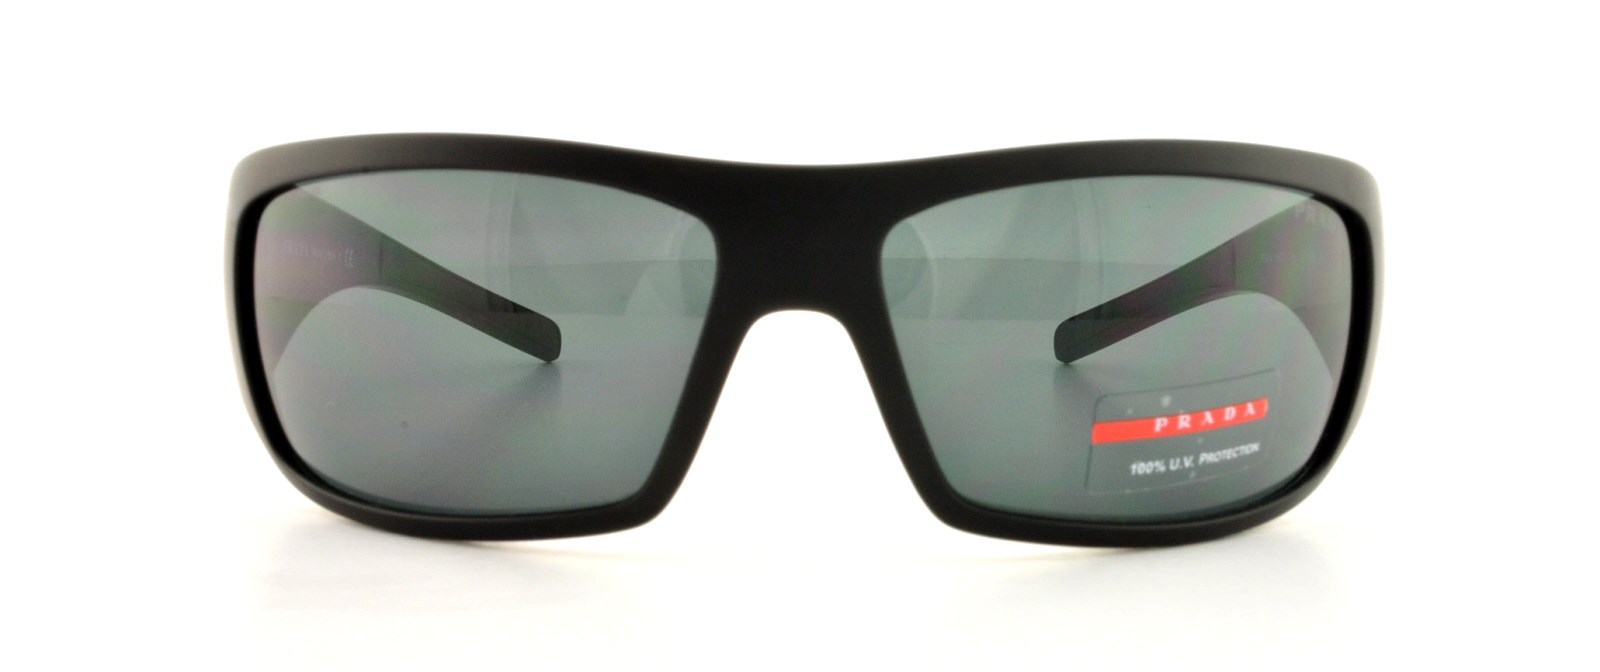 e56bd91028b ... order picture of prada sport sunglasses ps01ls intrepid cd5c3 879da